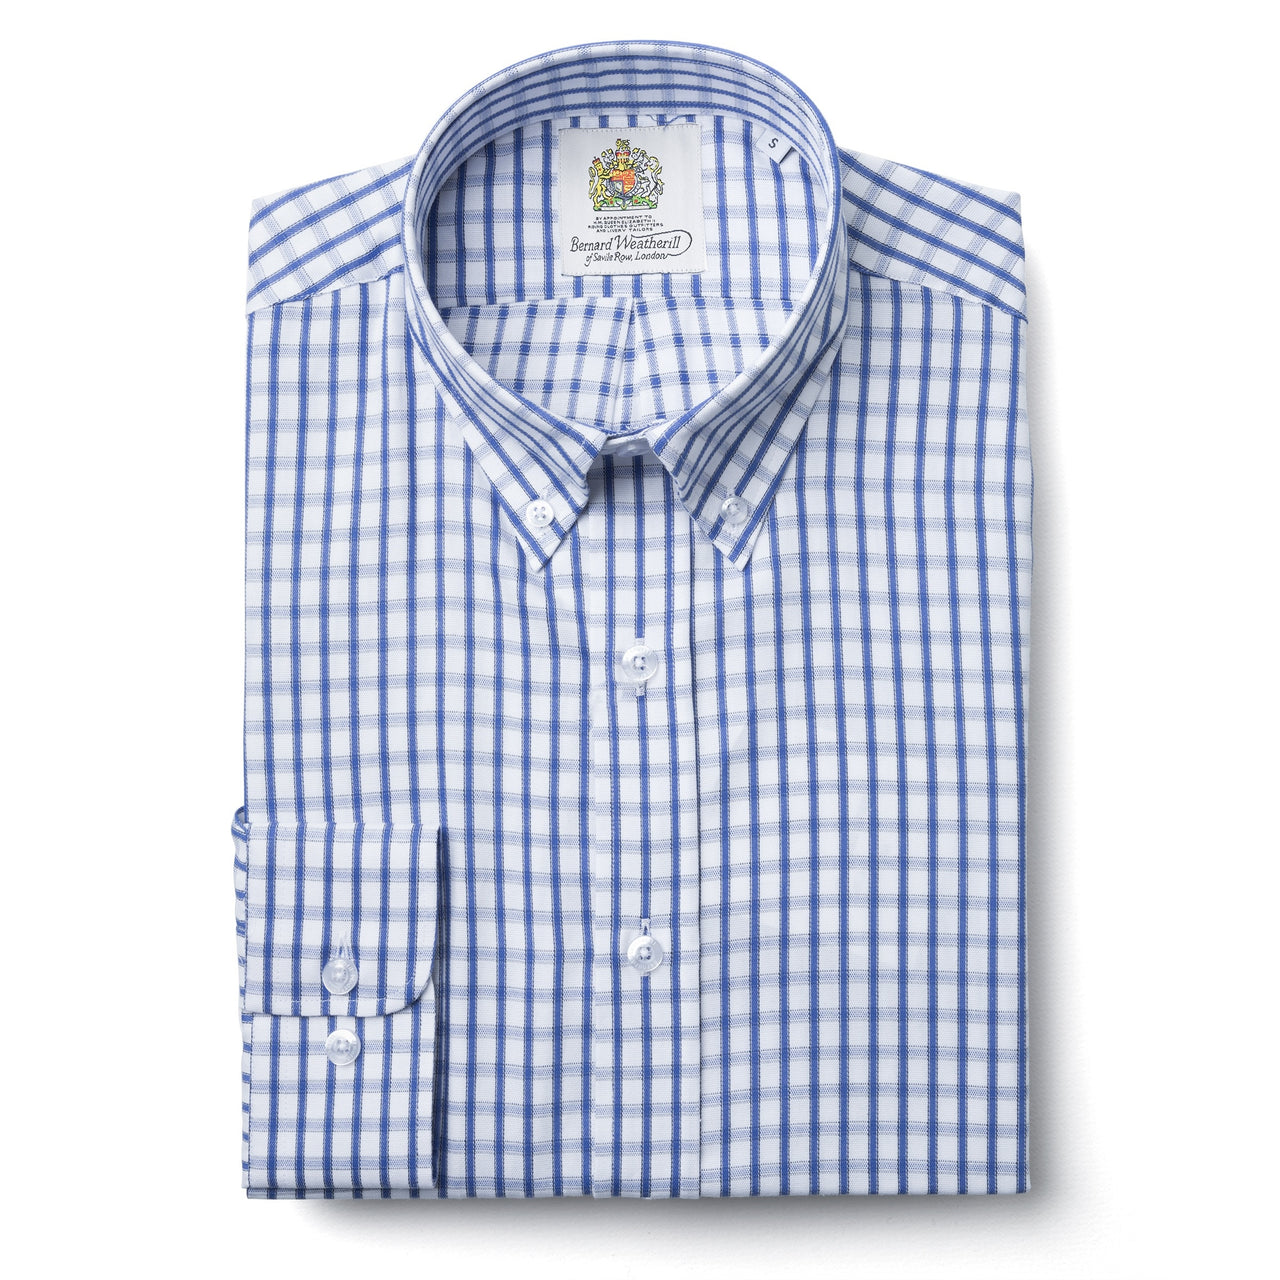 Bernard Weatherill Blue & White Oxford Cloth Check Button Down Shirt